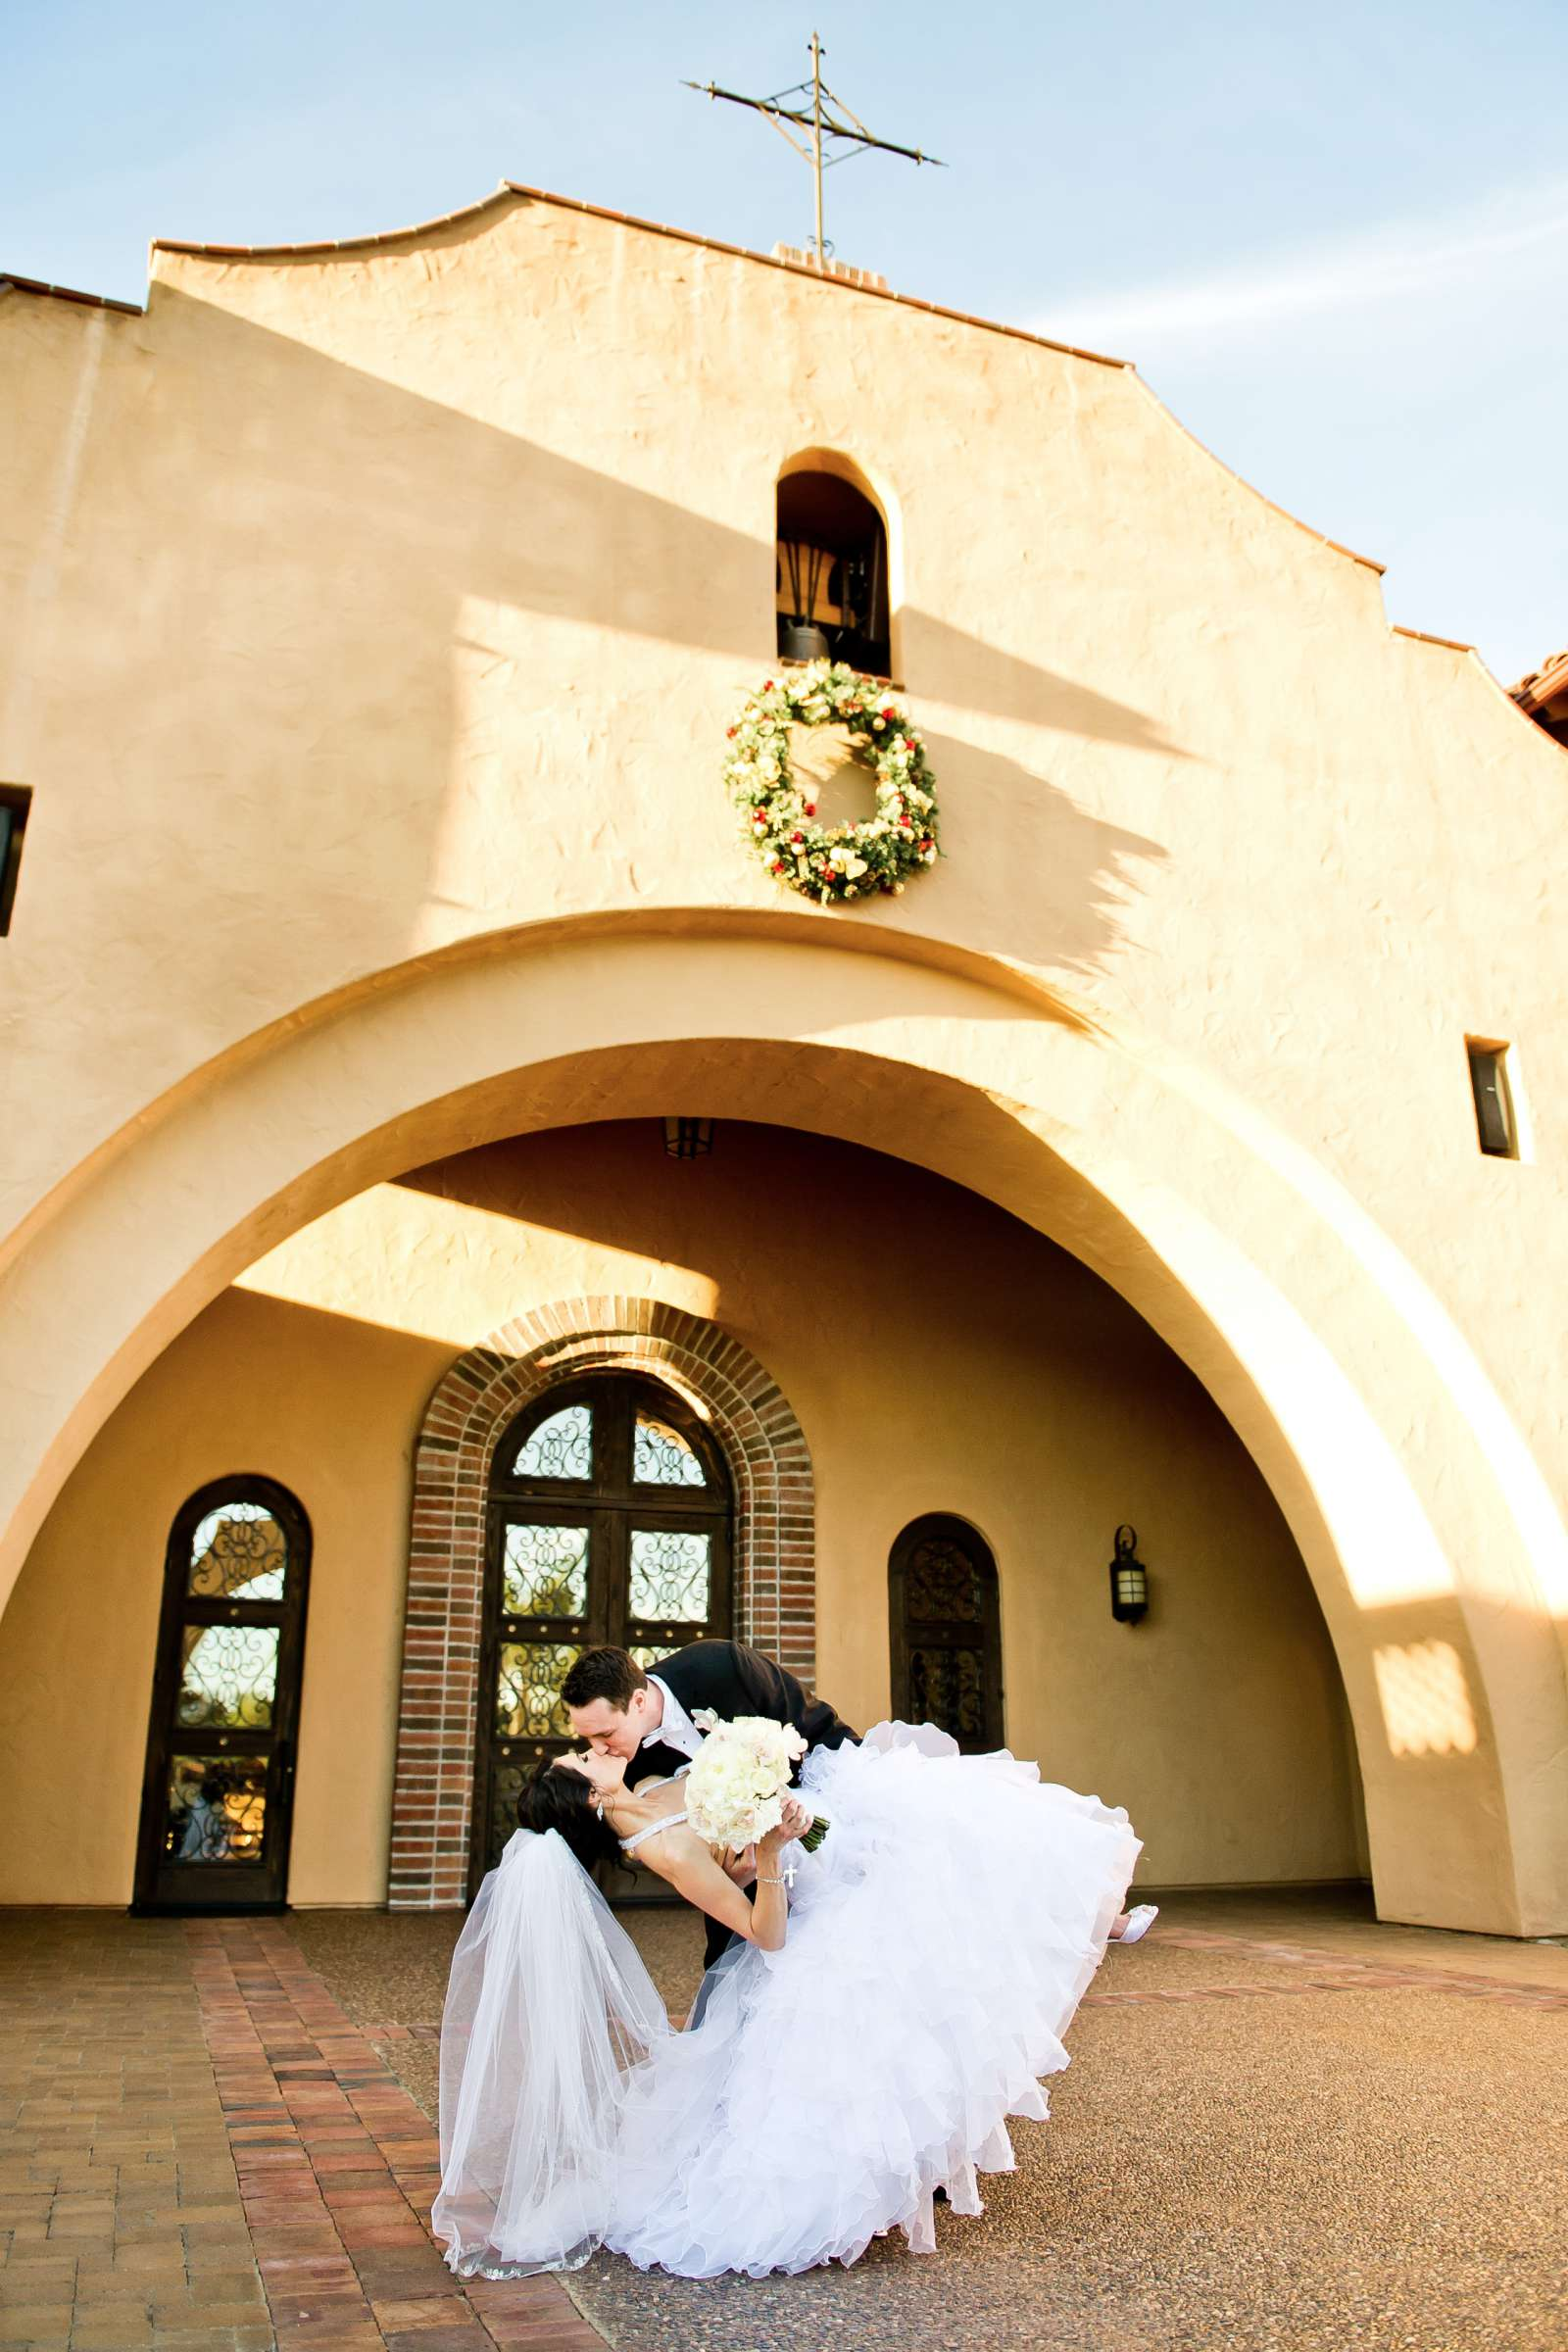 Fairmont Grand Del Mar Wedding, Angela and Tom Wedding Photo #2 by True Photography